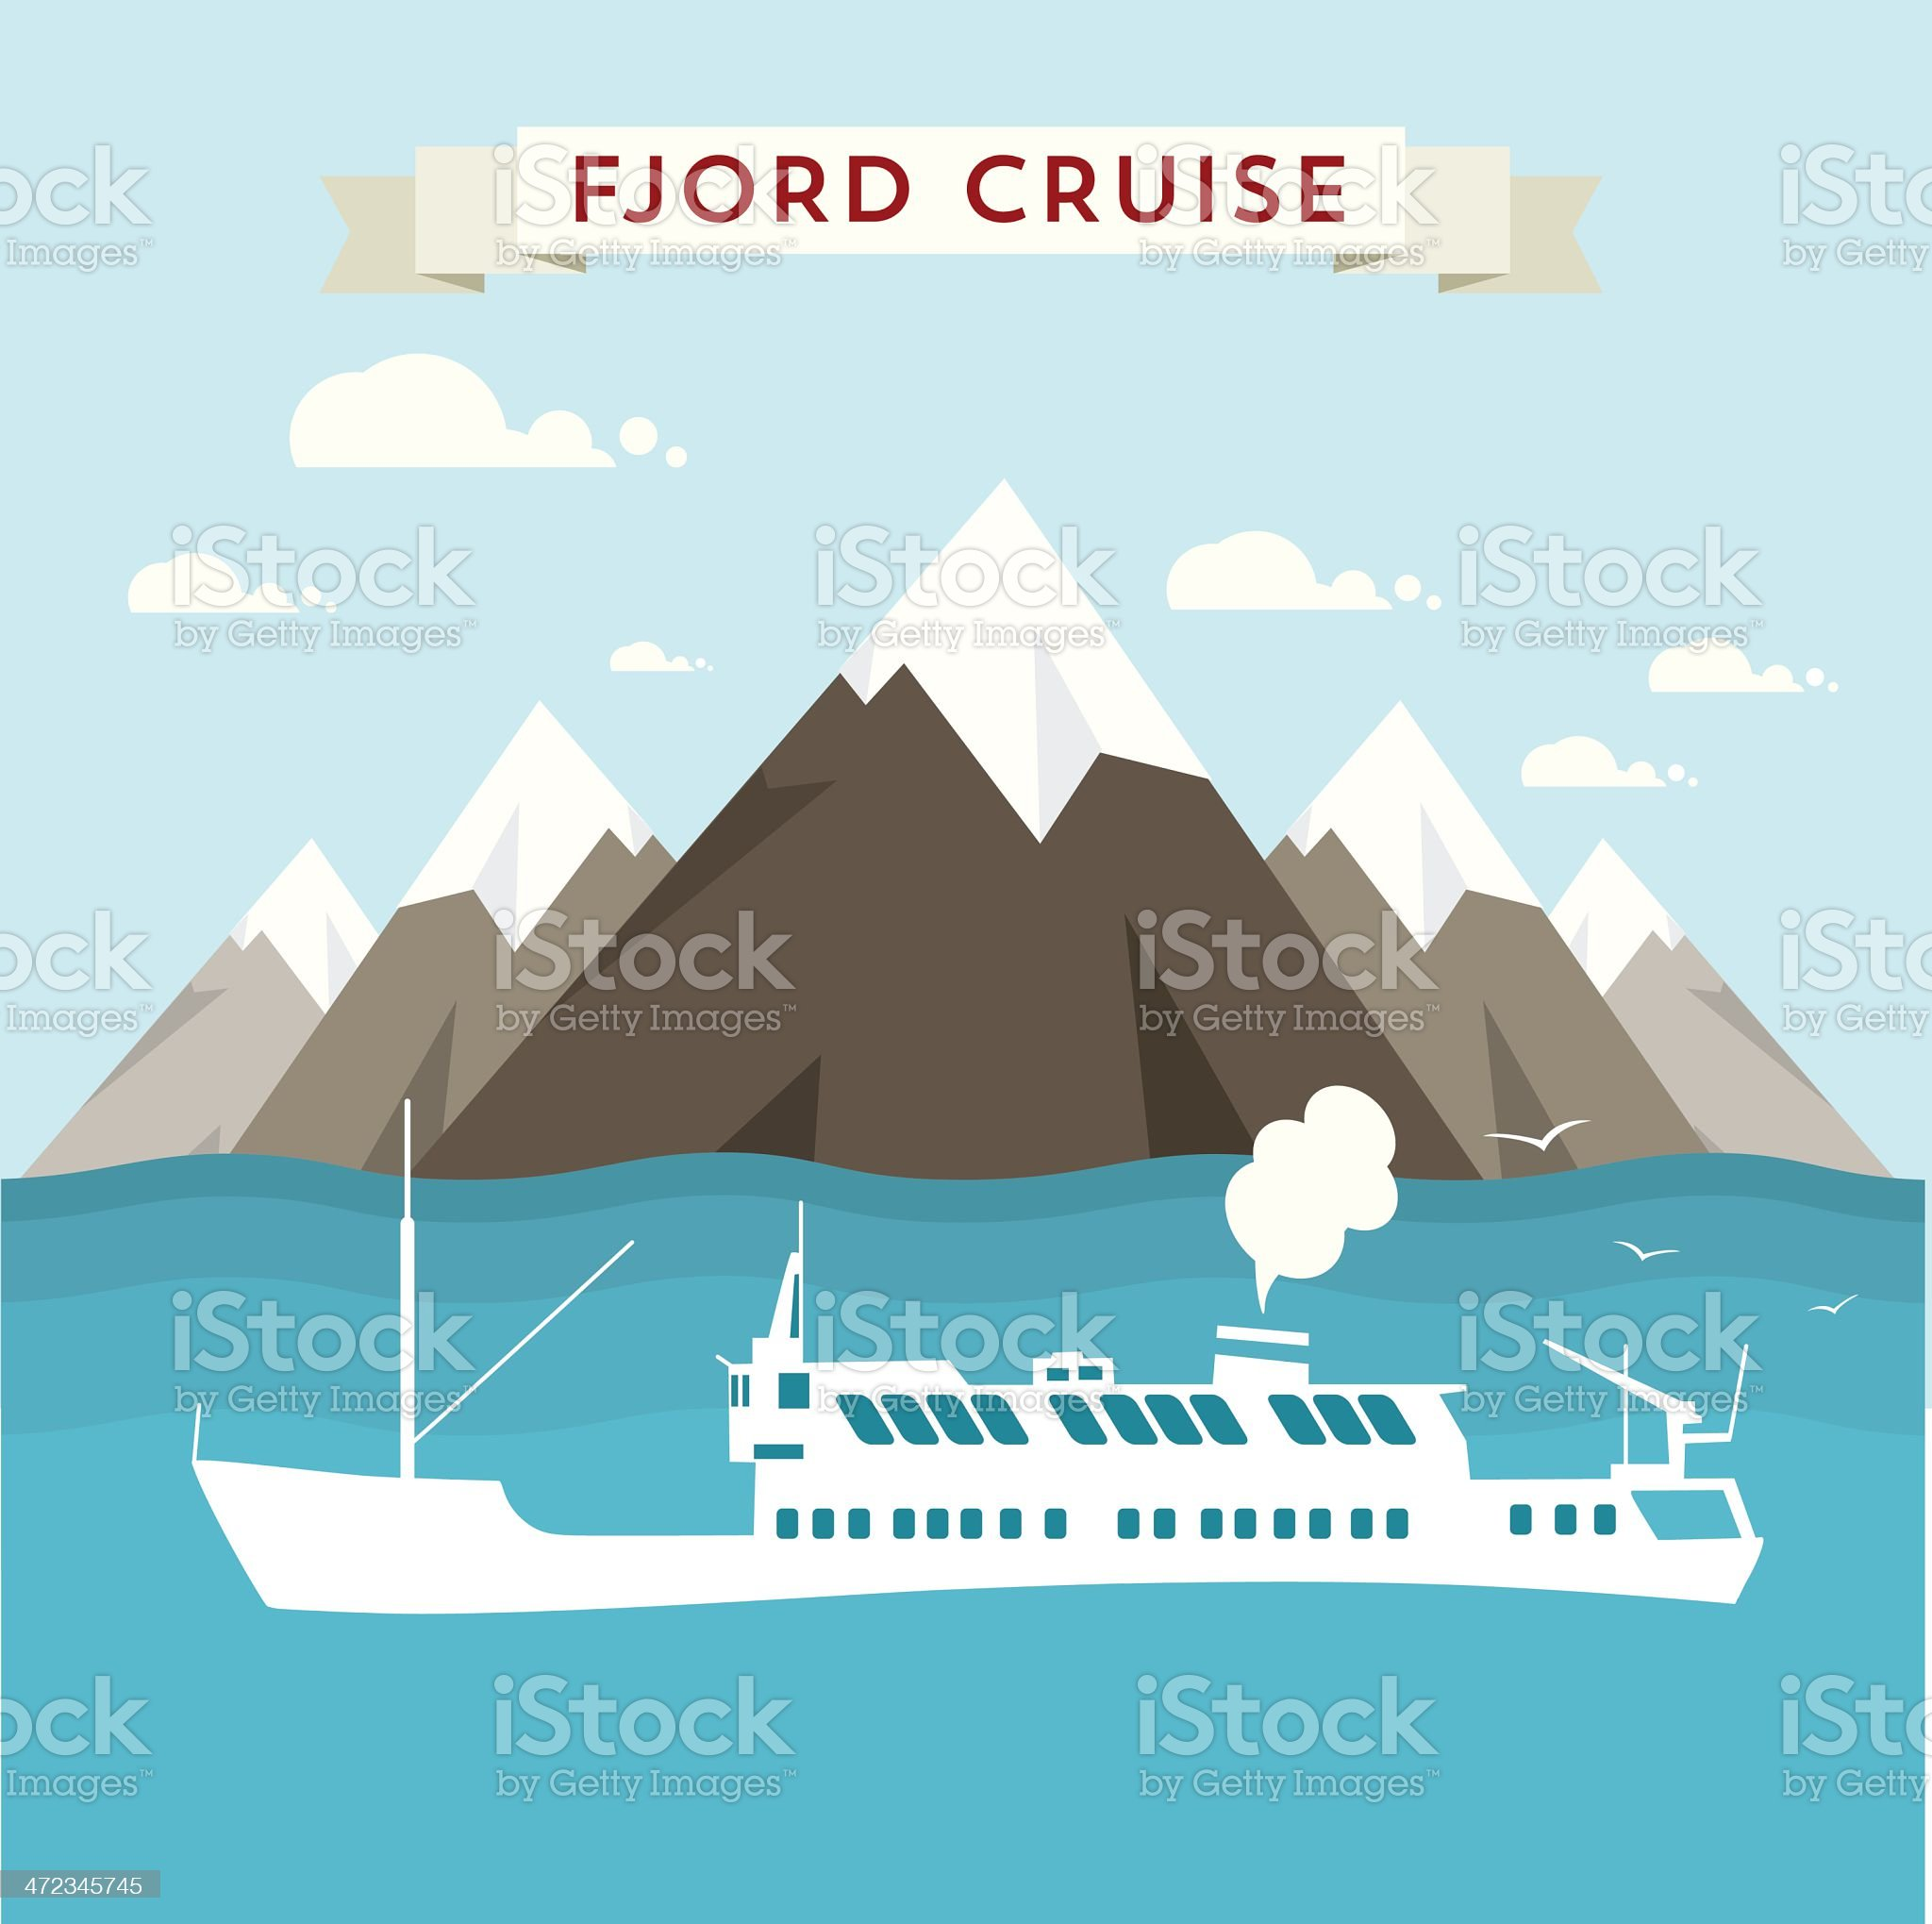 Fjord cruise royalty-free stock vector art